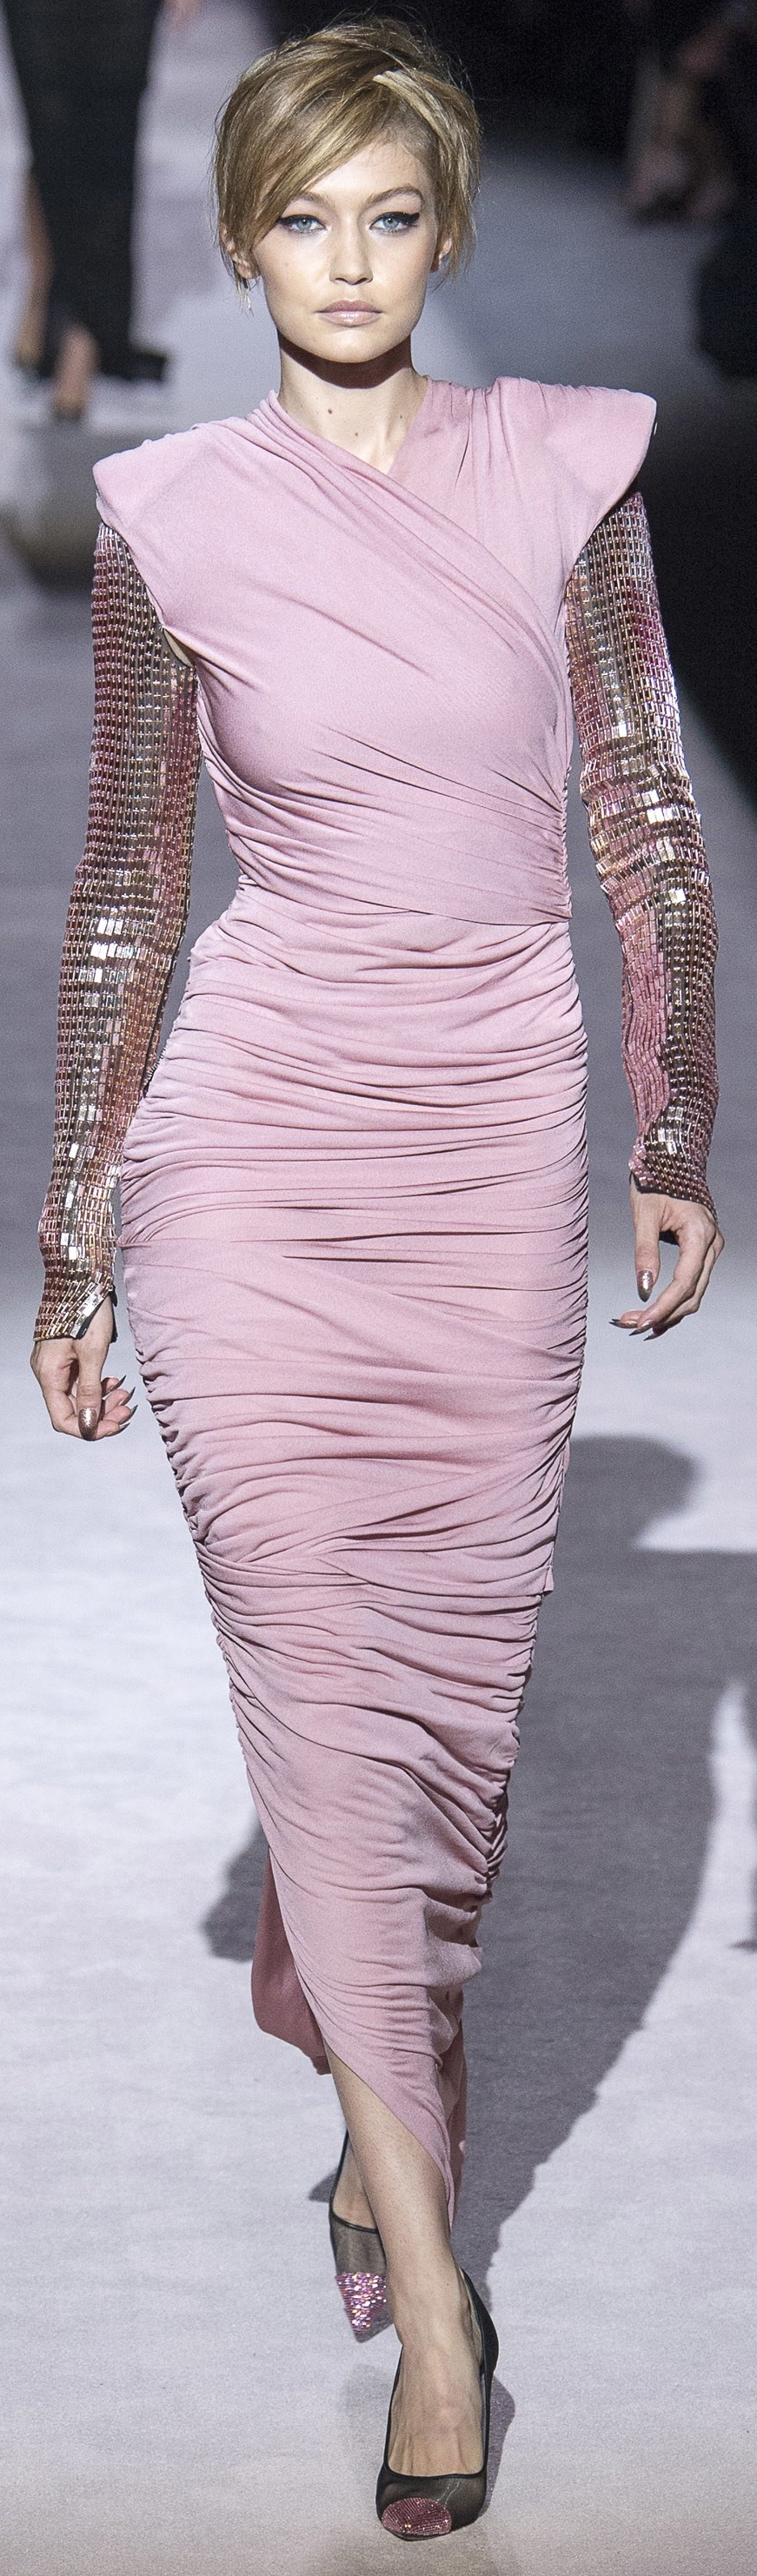 Cocktail dress pictures 2018 ford